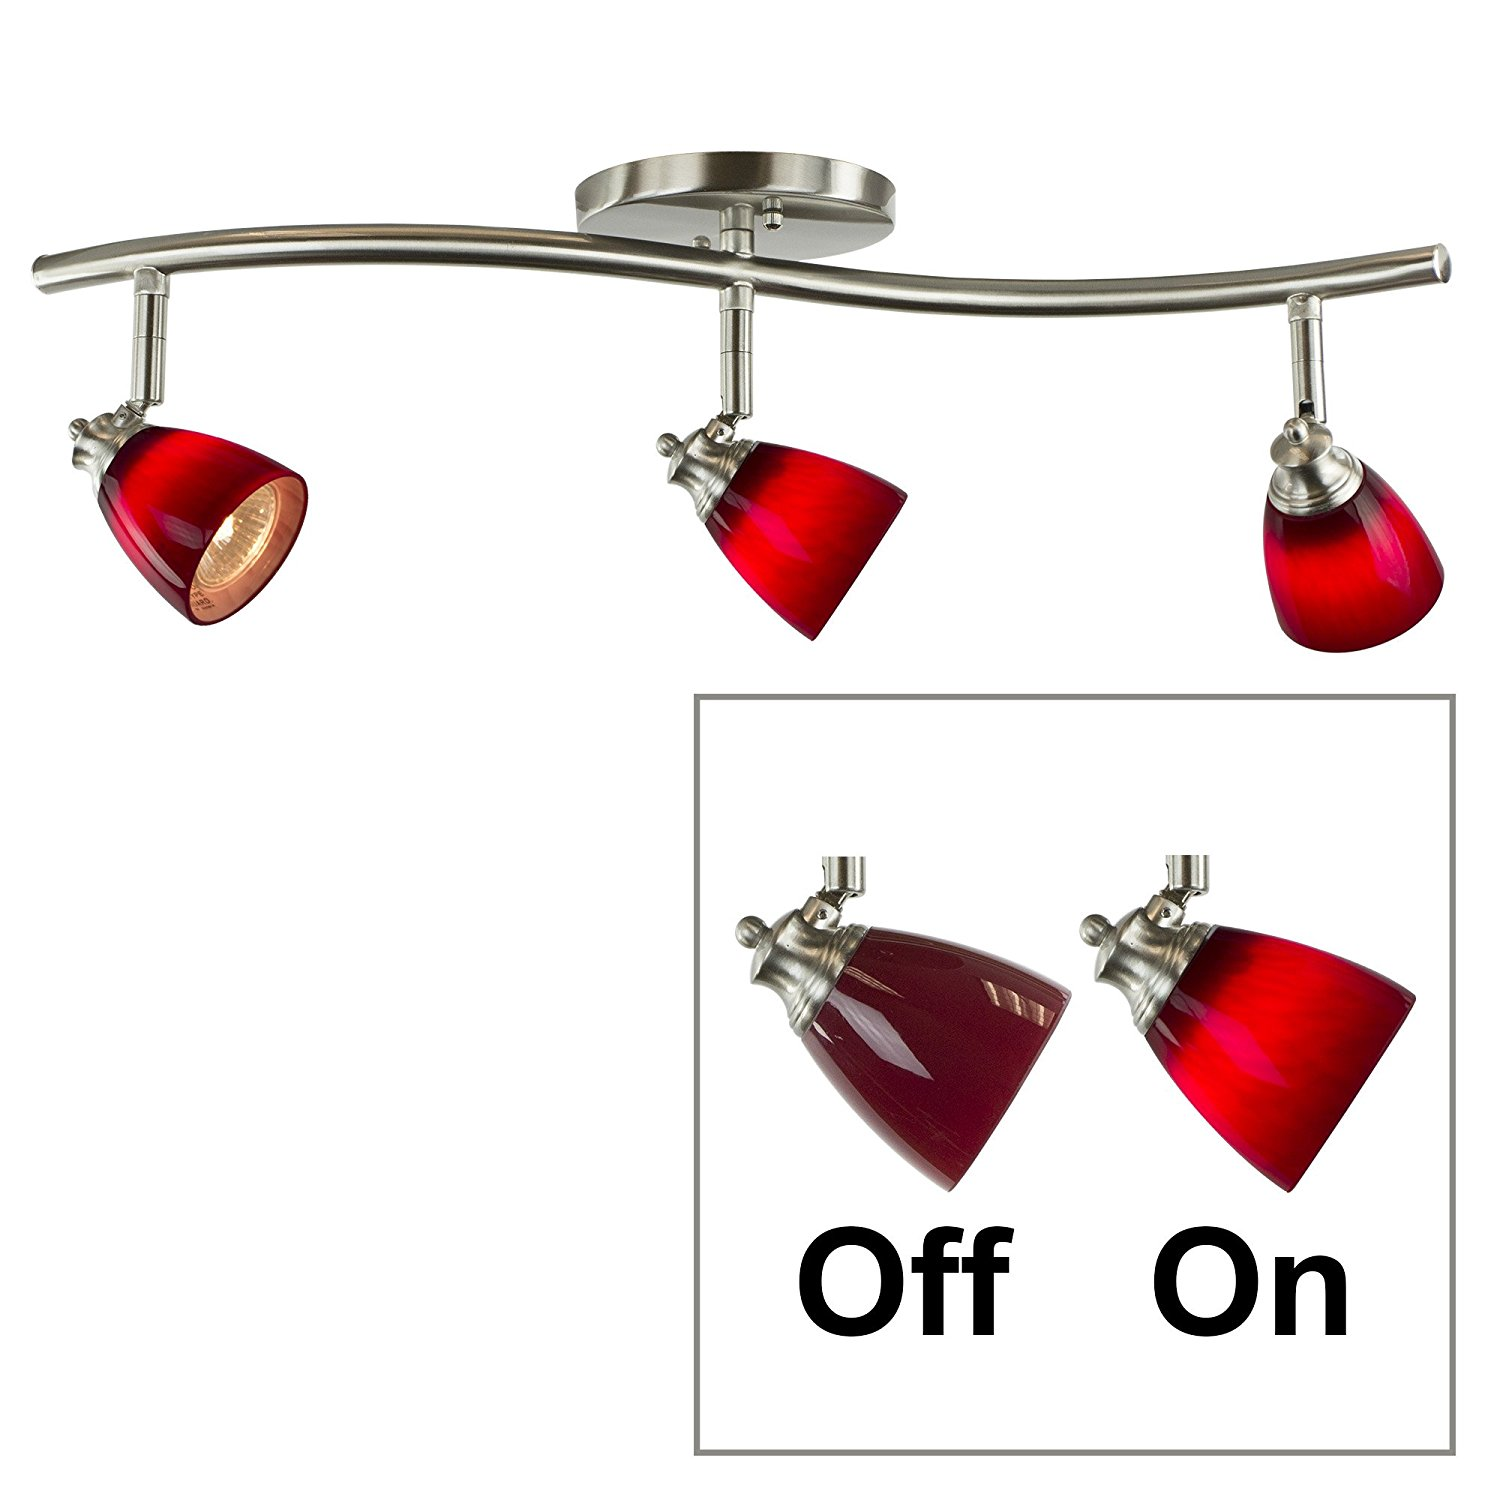 Direct-Lighting 3 Lights Adjustable Track Lighting Kit - Brushed Steel Finish - Red Glass Track Heads - GU10 Bulbs Included. D268-23C-BS-BRED